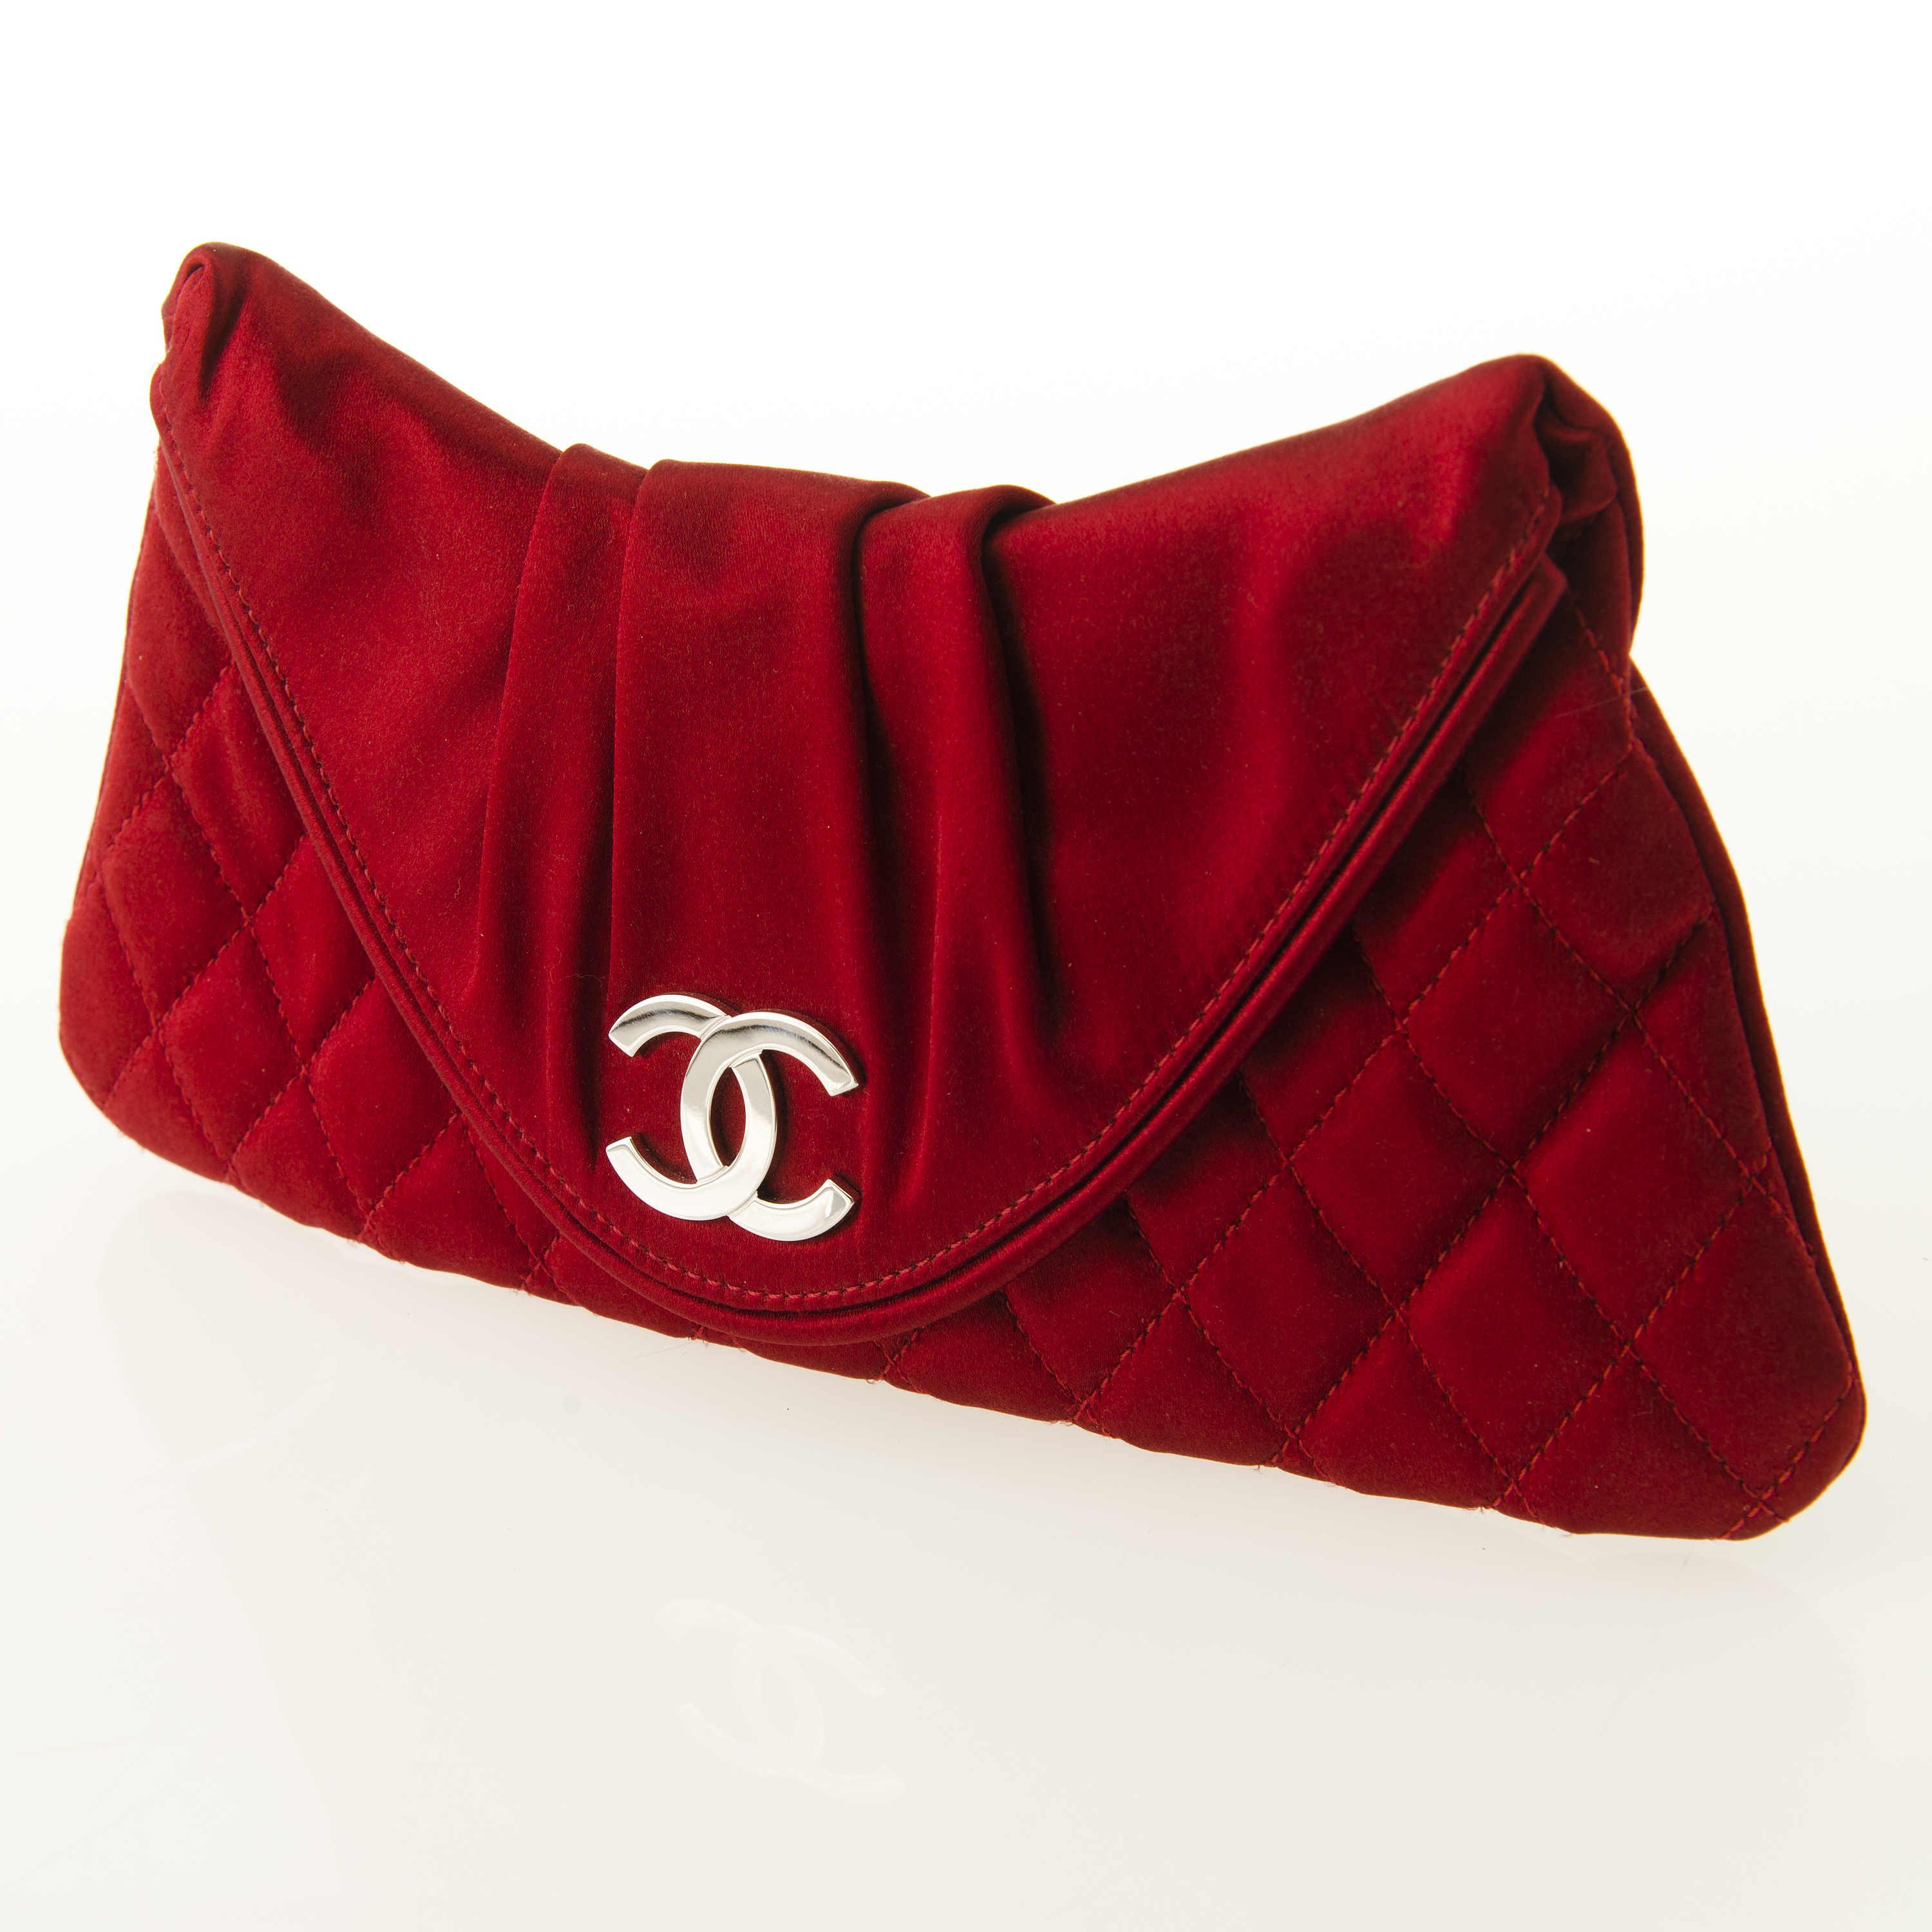 CHANEL Red Satin Evening Bag. - Bukowskis 084540cbd0424